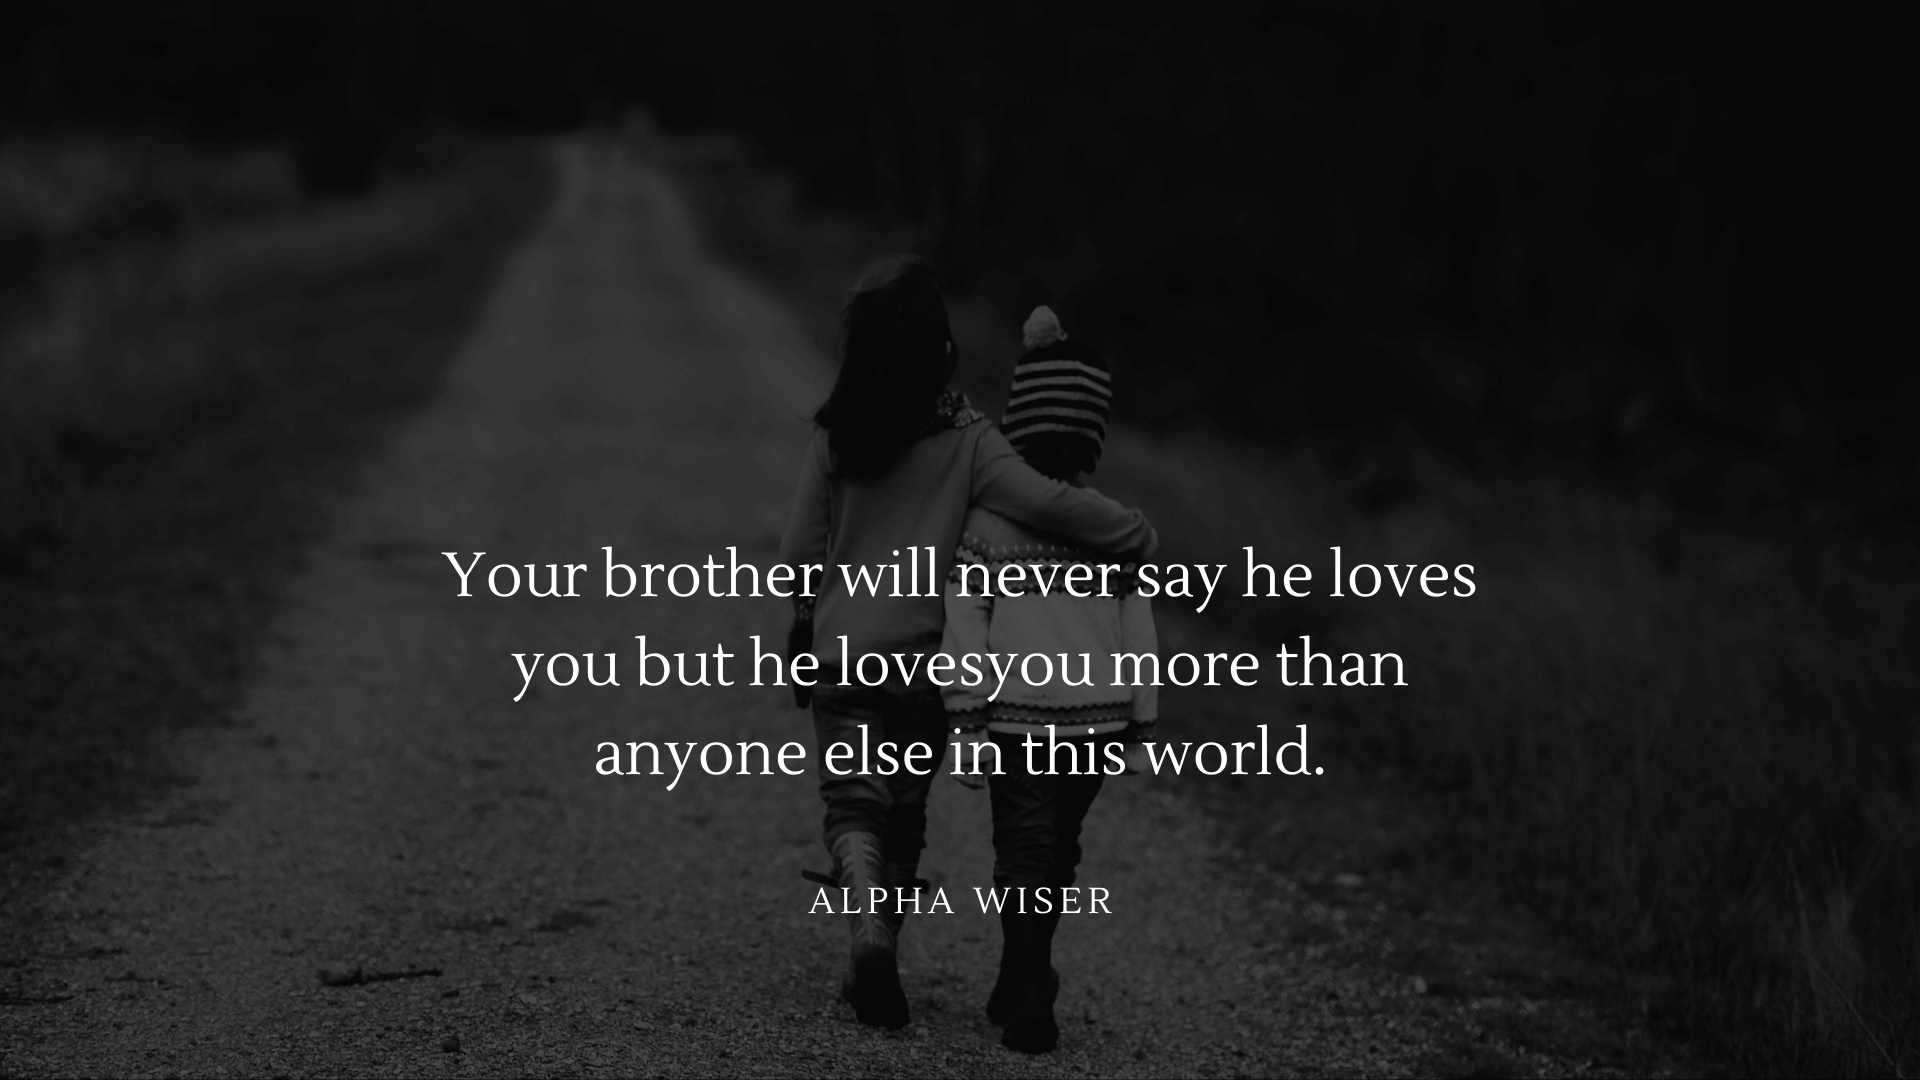 Your brother will never say he loves you but he loves you more than anyone else in this world (1)